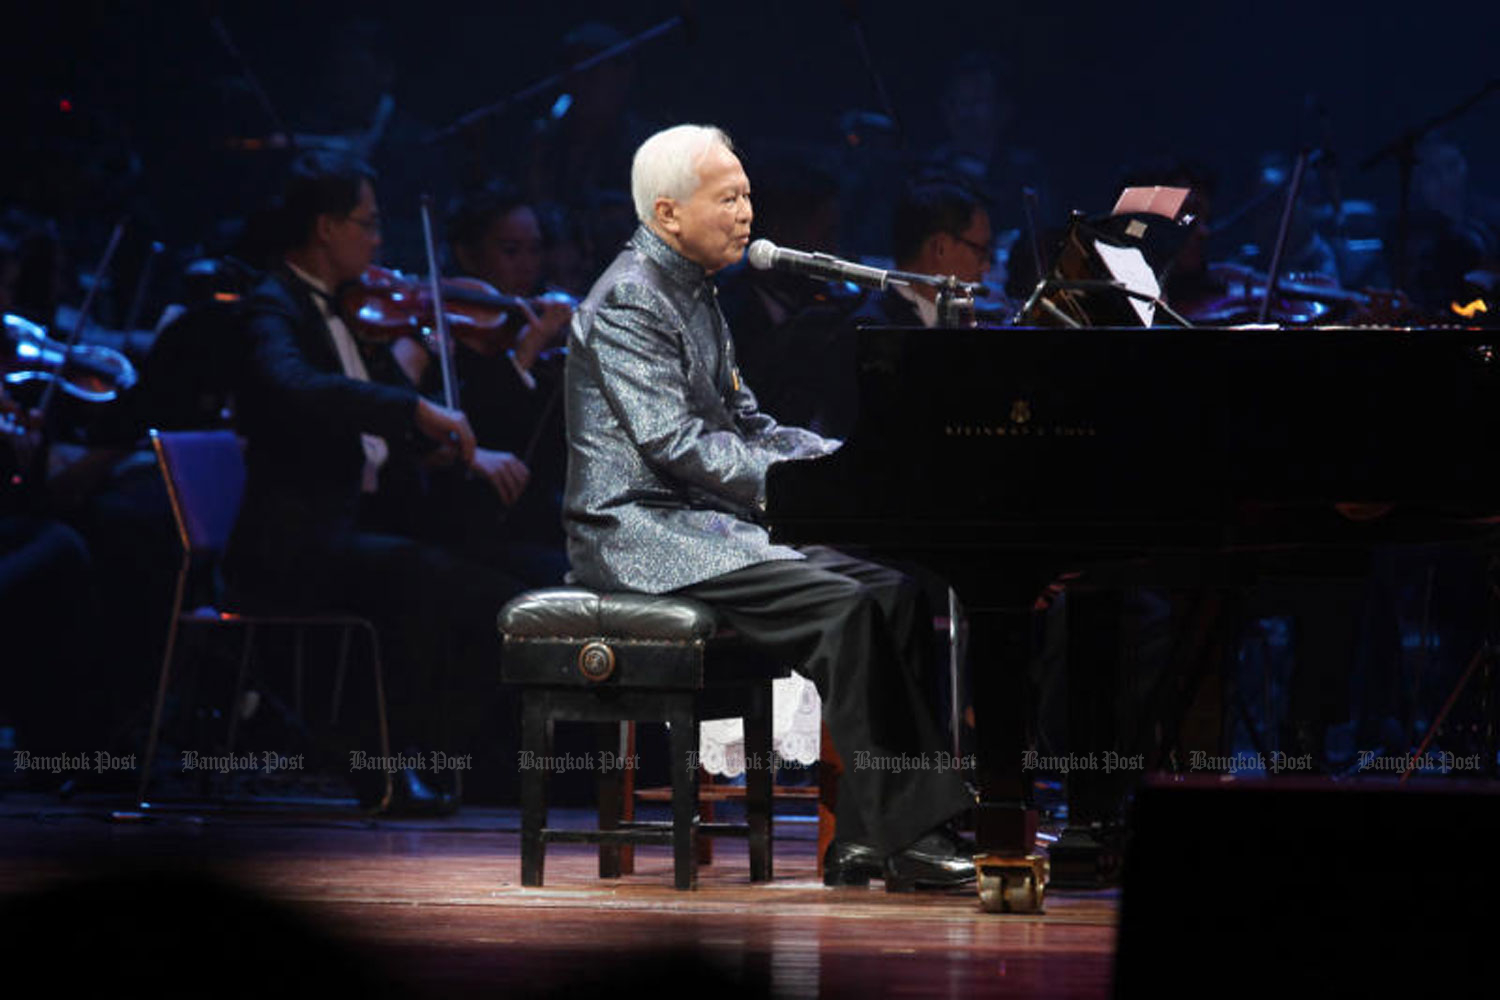 Privy Council president Prem Tinsulanonda played piano and sang during the My Season Change event, held at Thailand Cultural Centre in Bangkok in 2013 to raise funds for the Prem Tinsulanonda Foundation. (Photo by Pattanapong Hirunard)